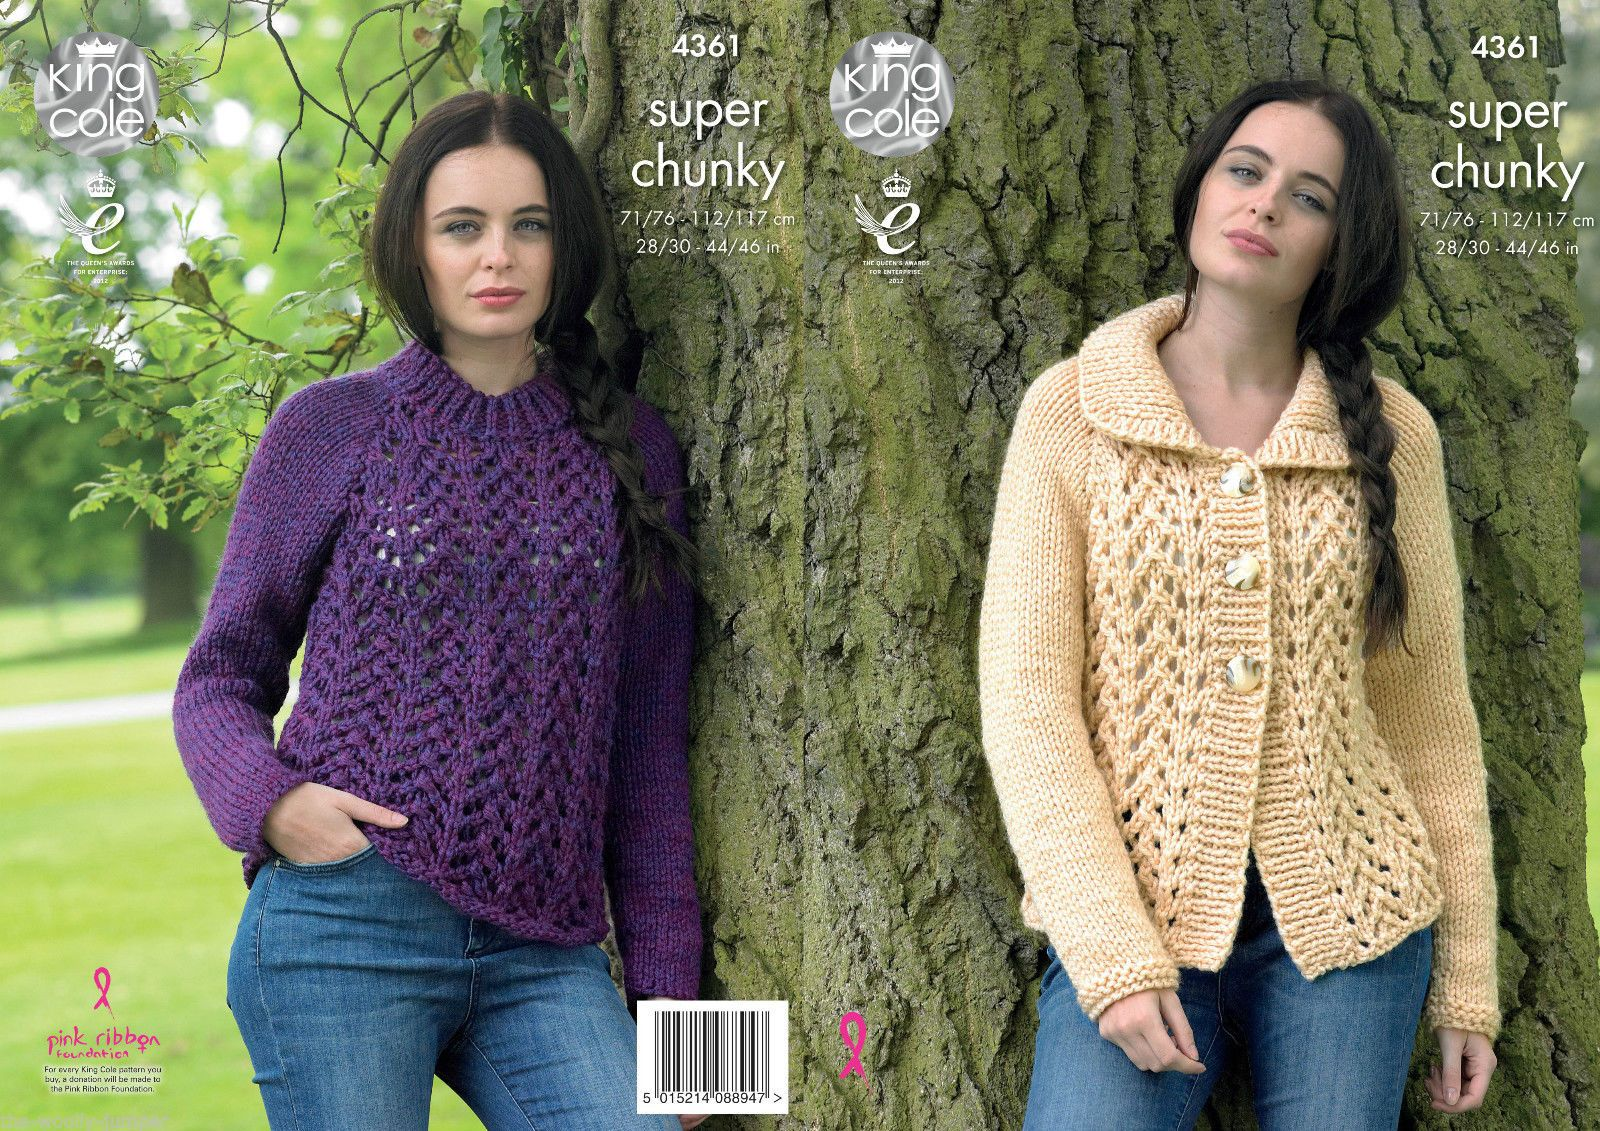 2523844bc76aaf 4361 - KING COLE BIG VALUE SUPER CHUNKY SWEATER   CARDIGAN KNITTING PATTERN  - TO FIT CHEST 28 TO 46